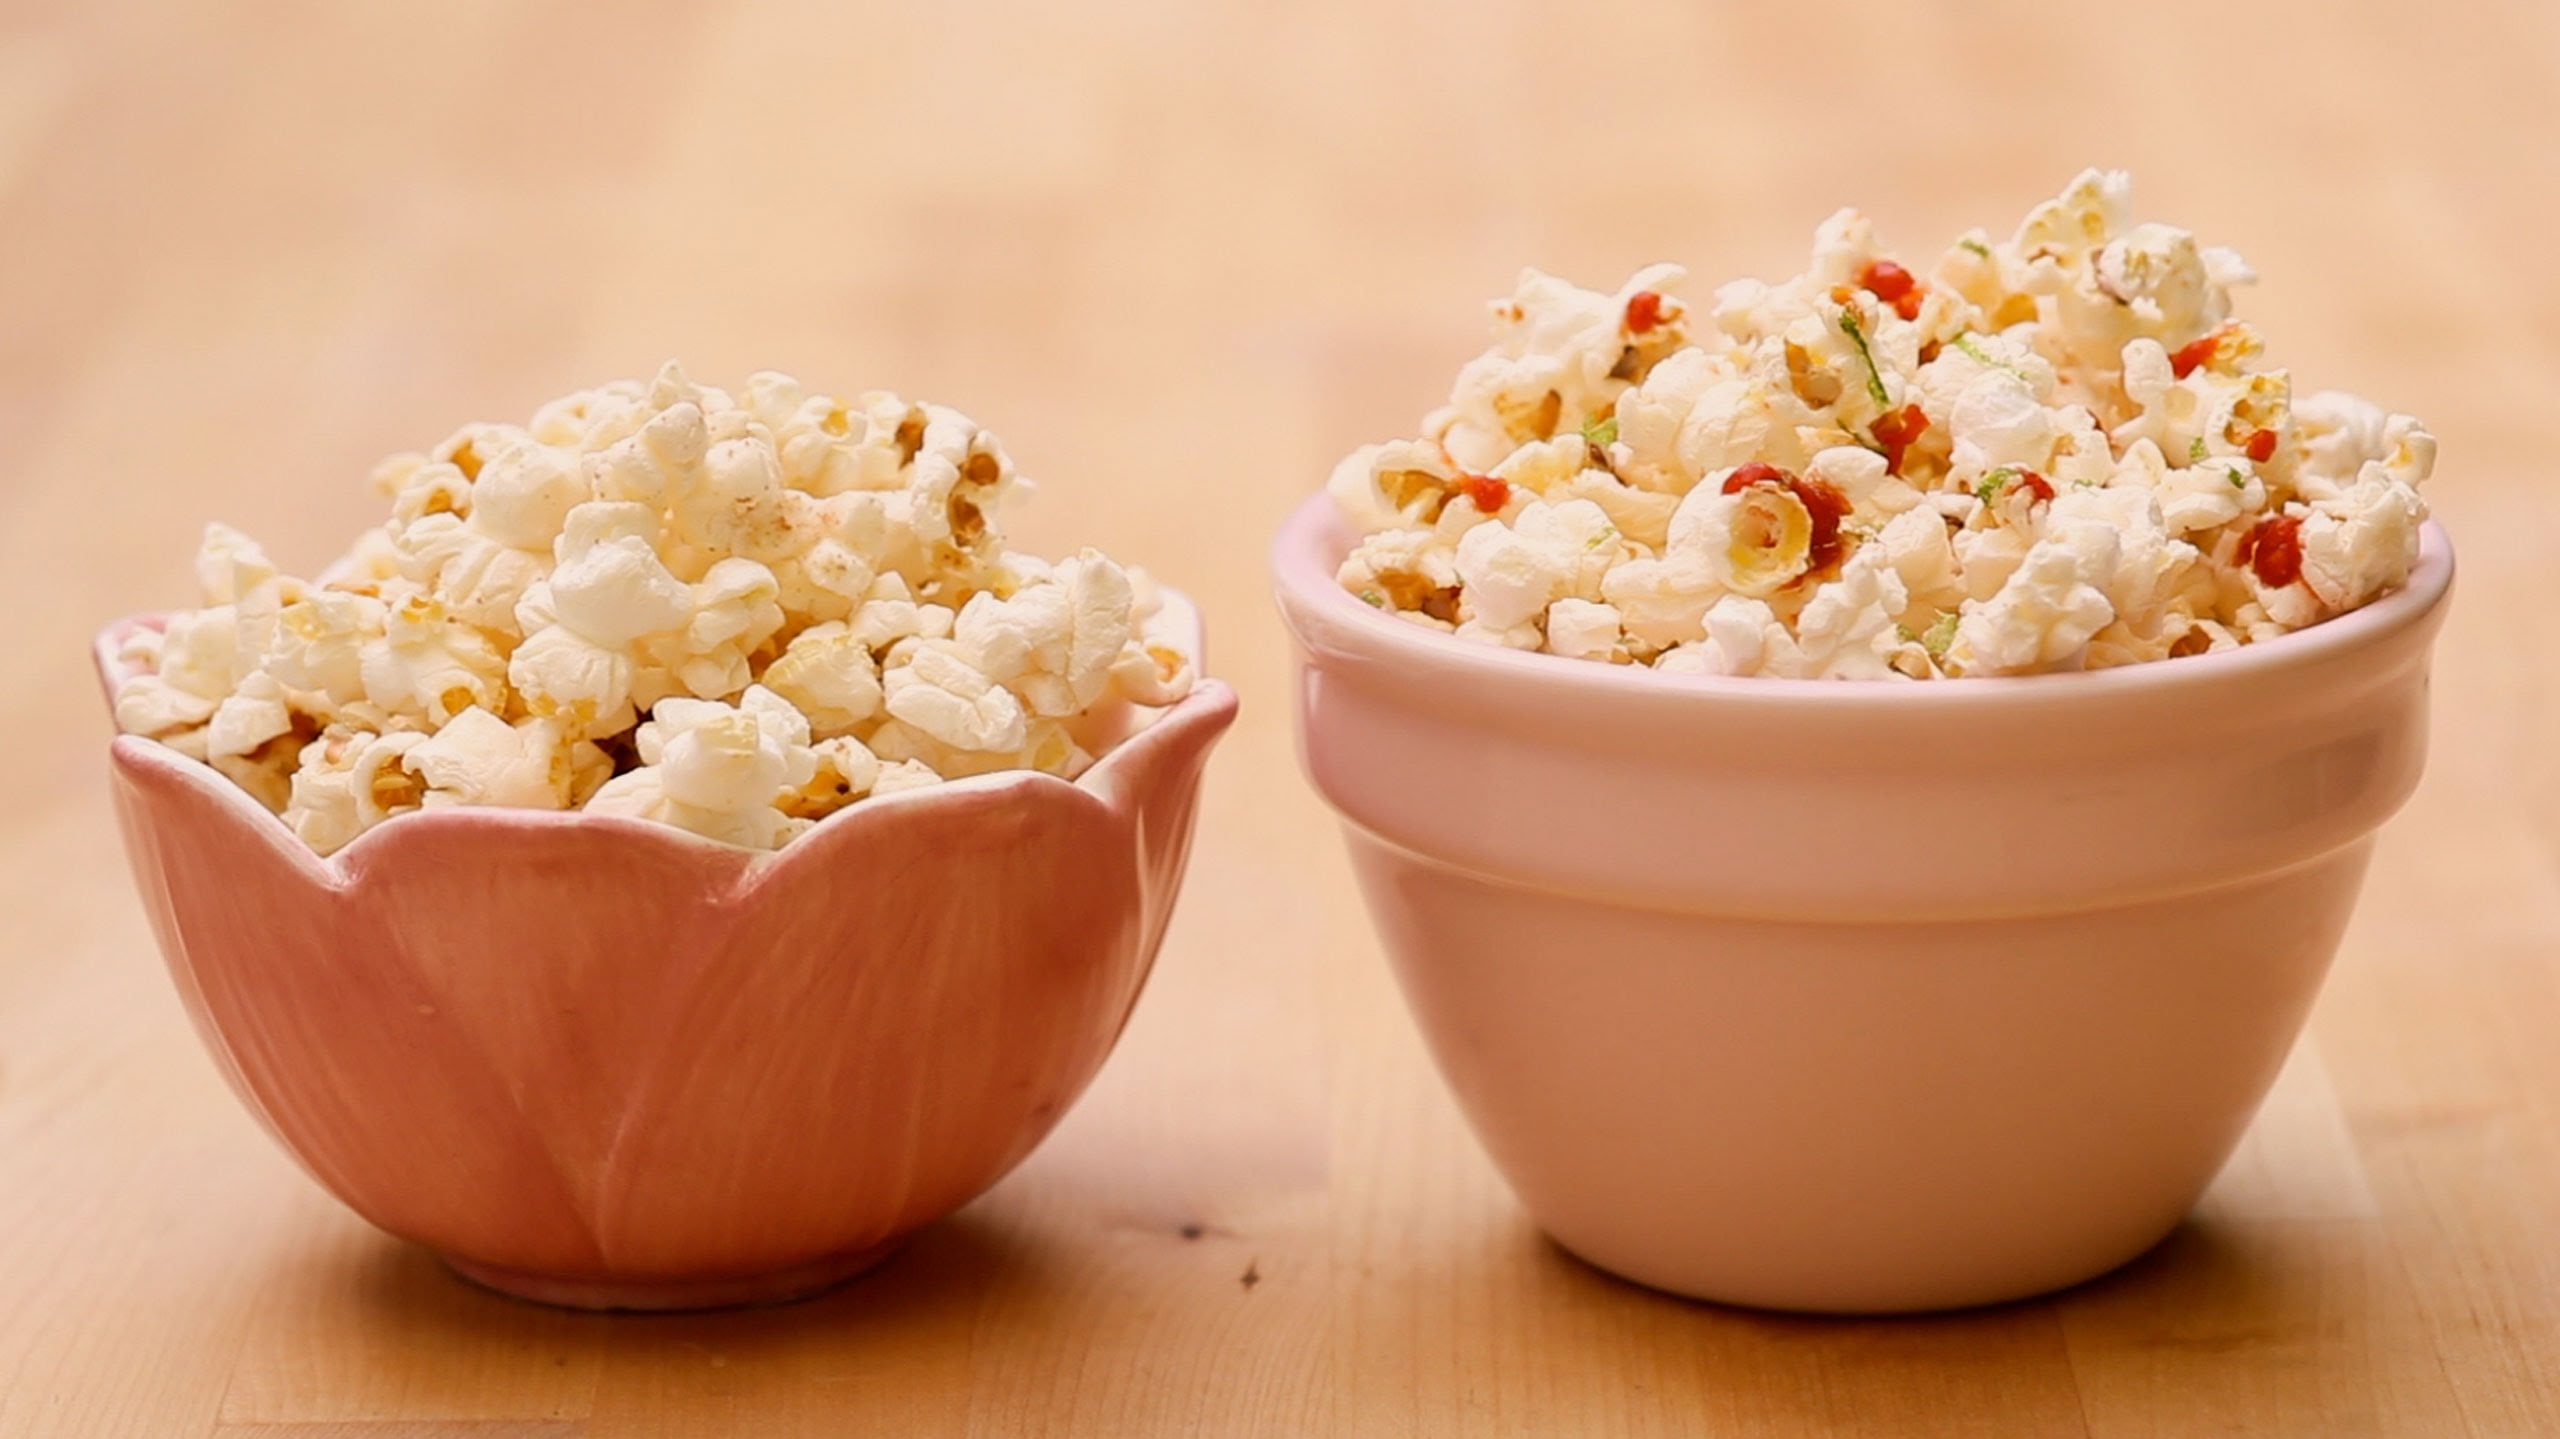 Popcorn Recipes With Surprising Ingredients | Everyday Health